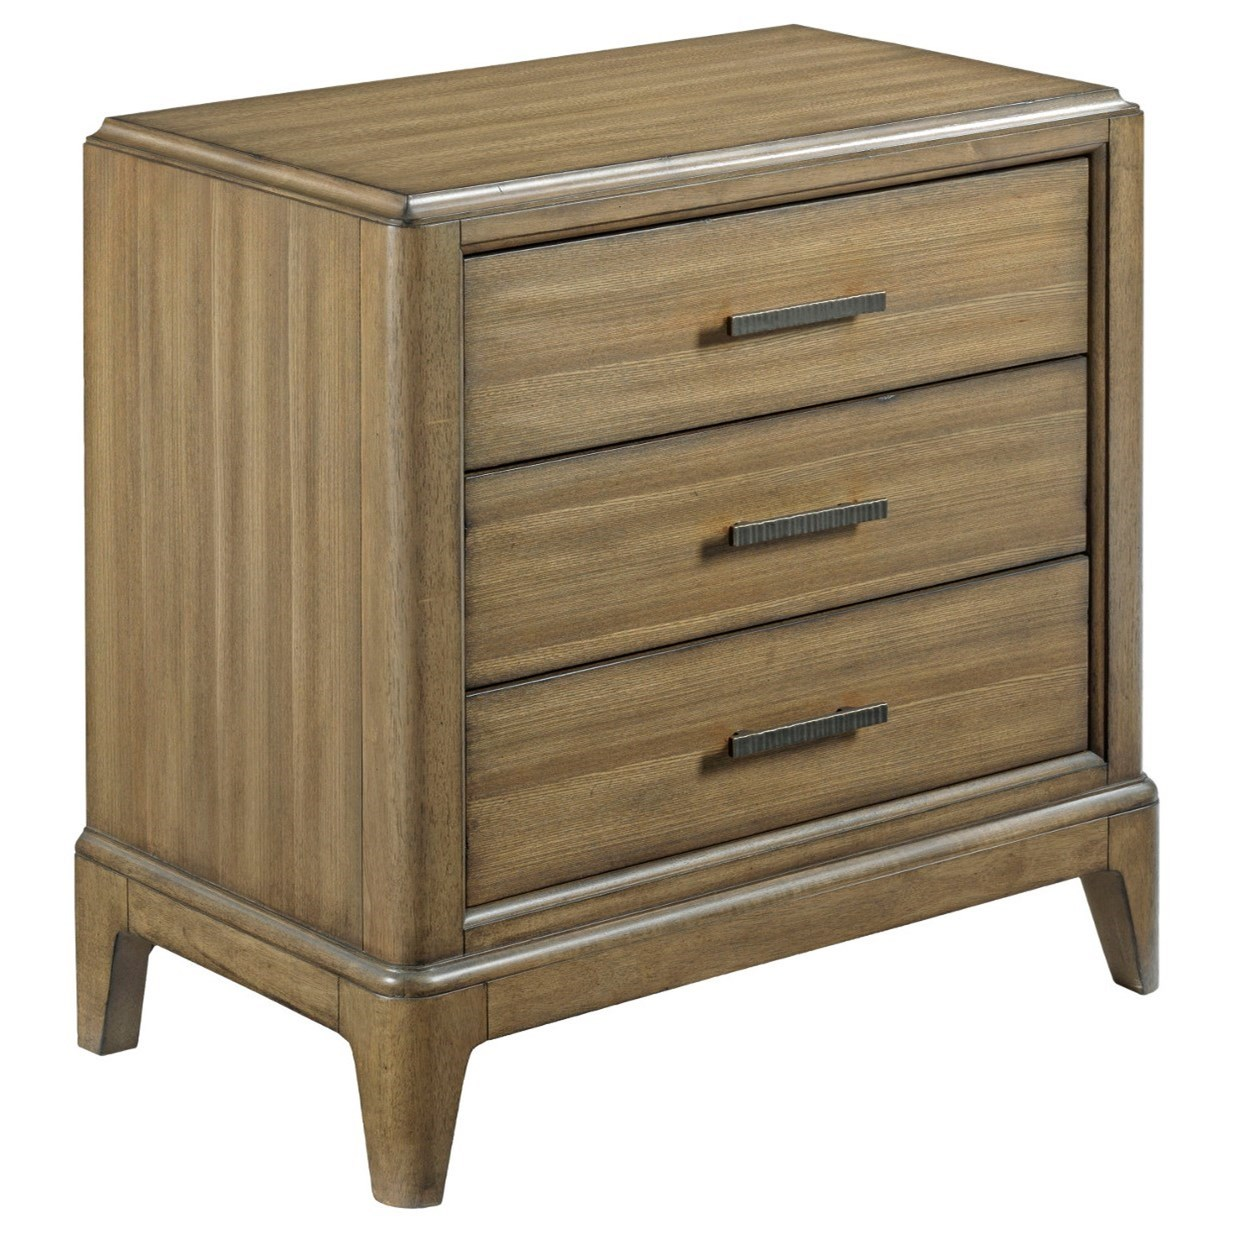 American Drew EVOKE  Nightstand with 3 Soft-Close Drawers - Item Number: 509-420